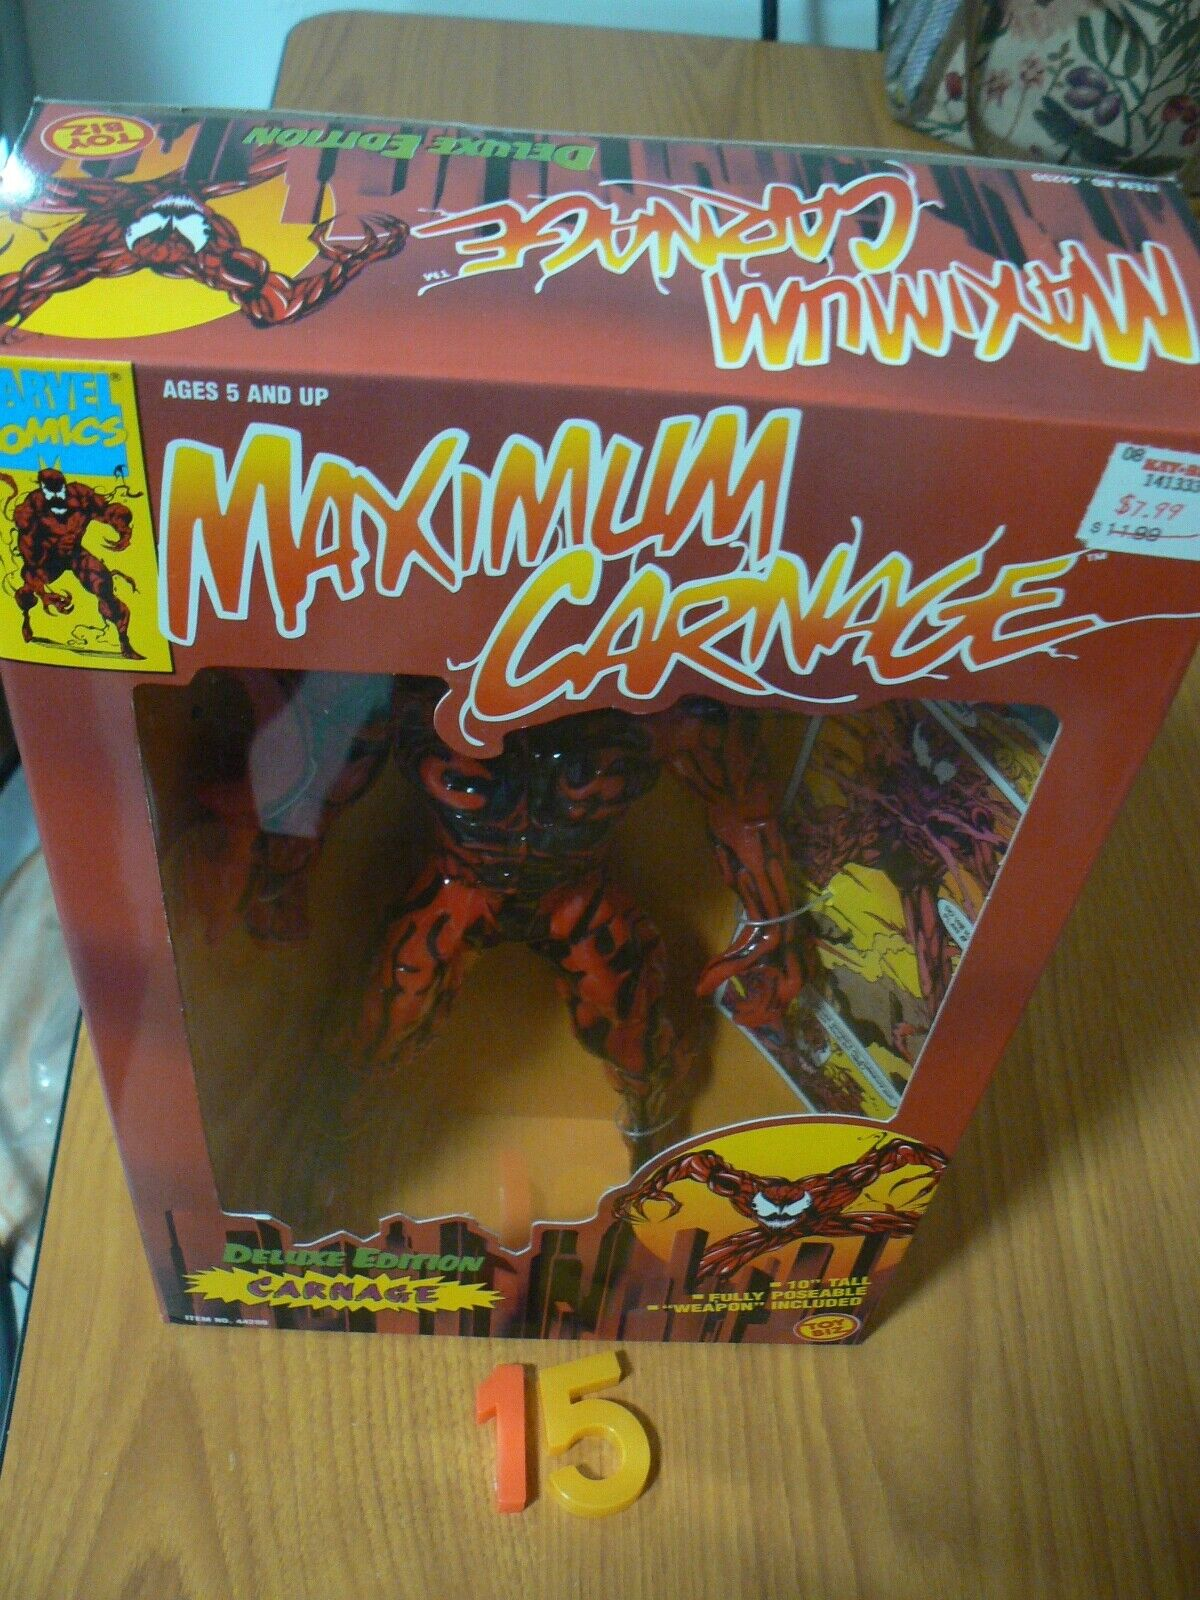 Spiderman Deluxe Sdition Action Figure 10  1994